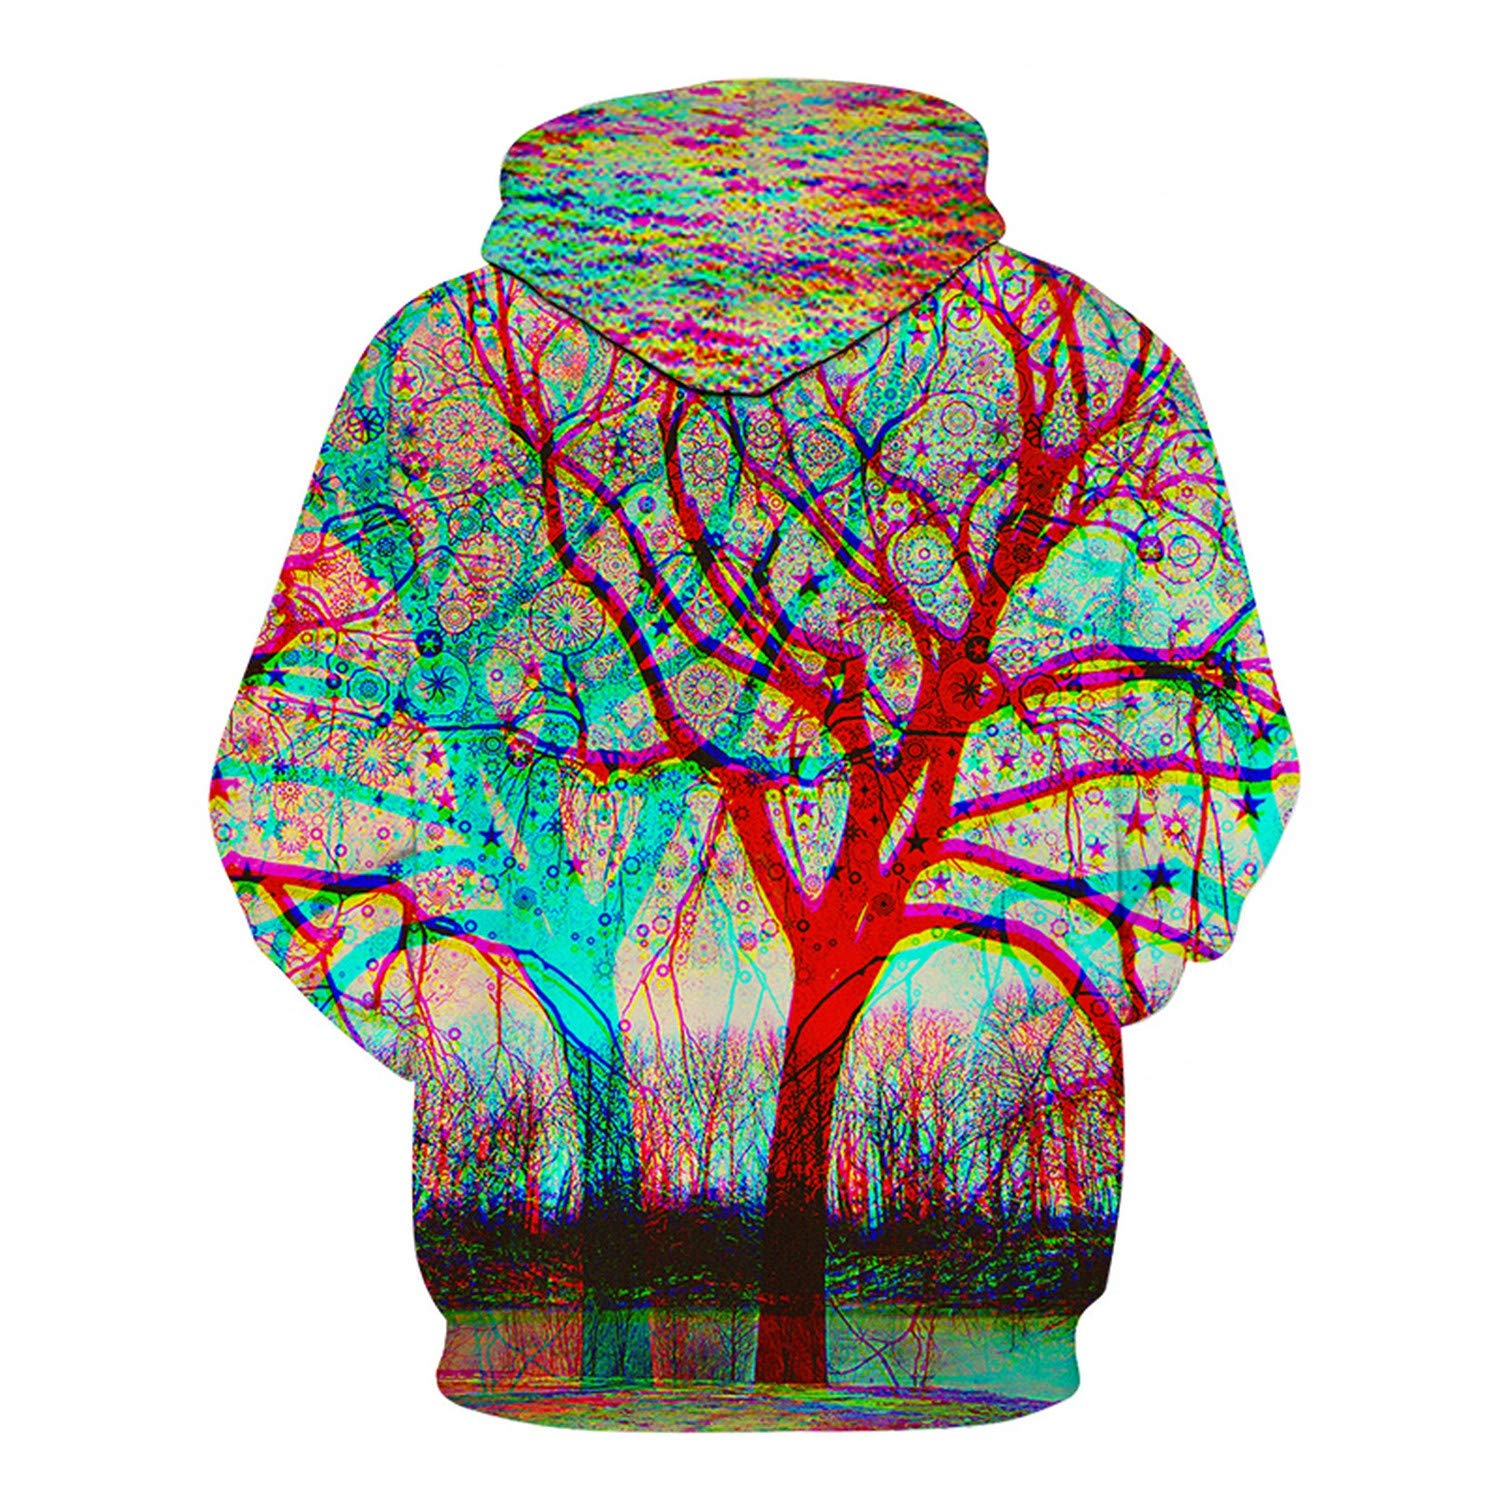 Gutuomy Wolf Printed Hoodies Men 3D Hoodies Sweatshirts Boy Jackets Quality Pullover Fashion Tracksuits Animal Streetwear Out Coat Picture Color S